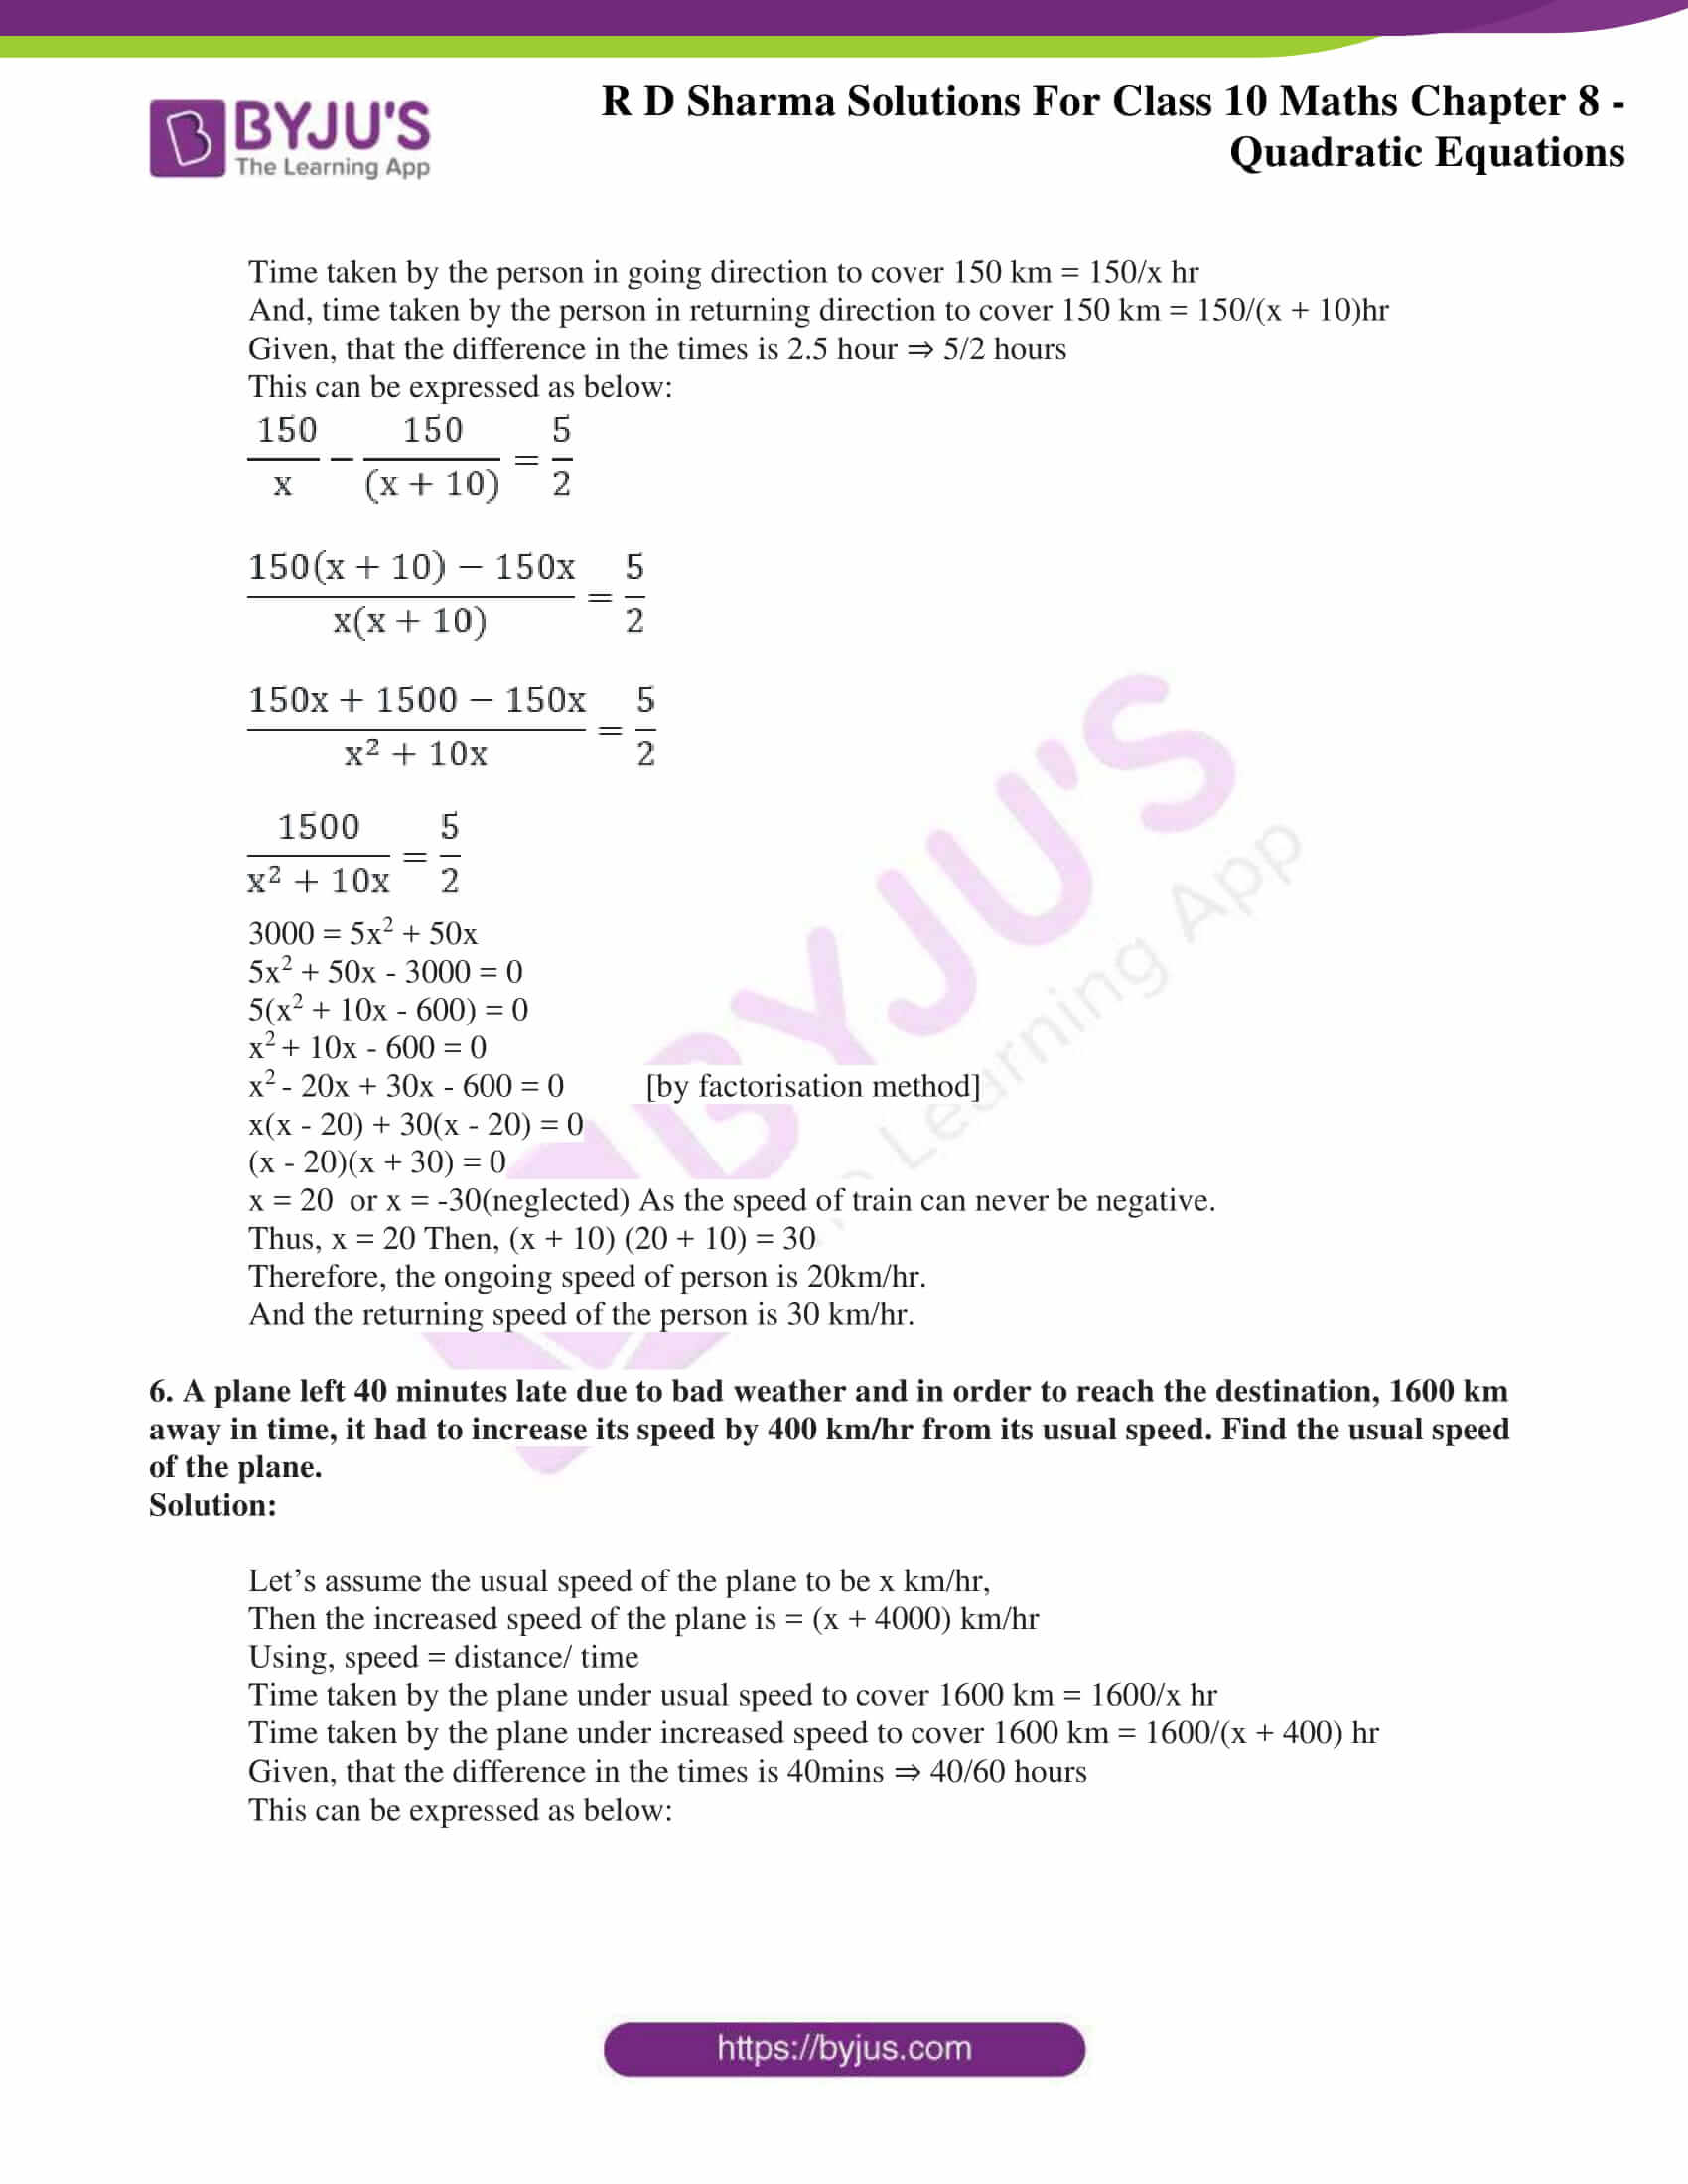 RD Sharma Solutions for Class 10 Chapter 8 Quadratic Equations 60